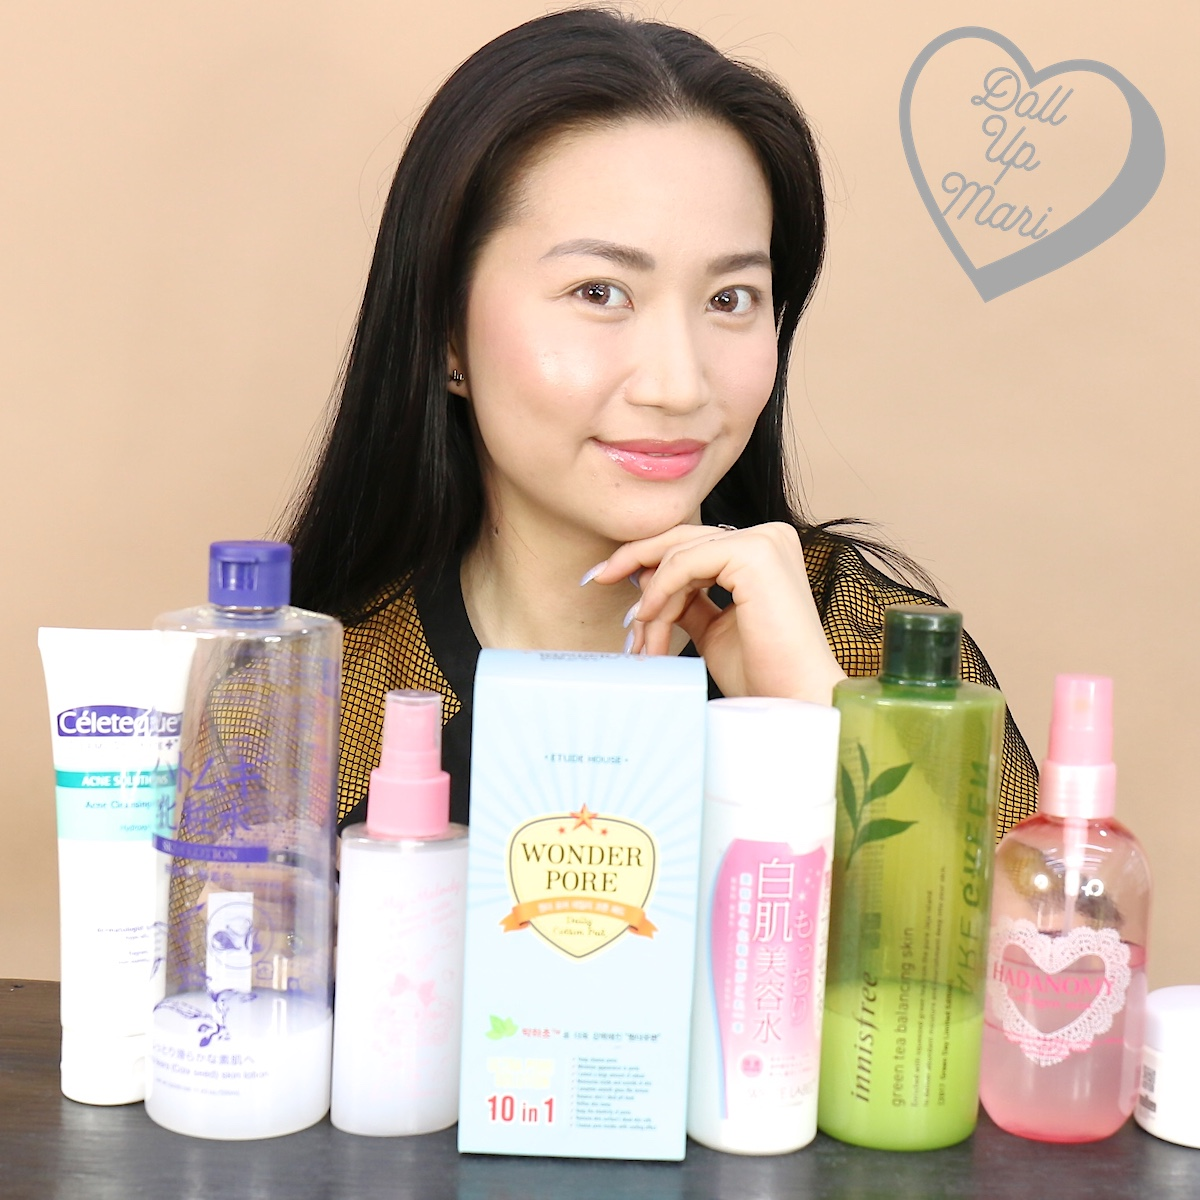 Posing with my current skincare products